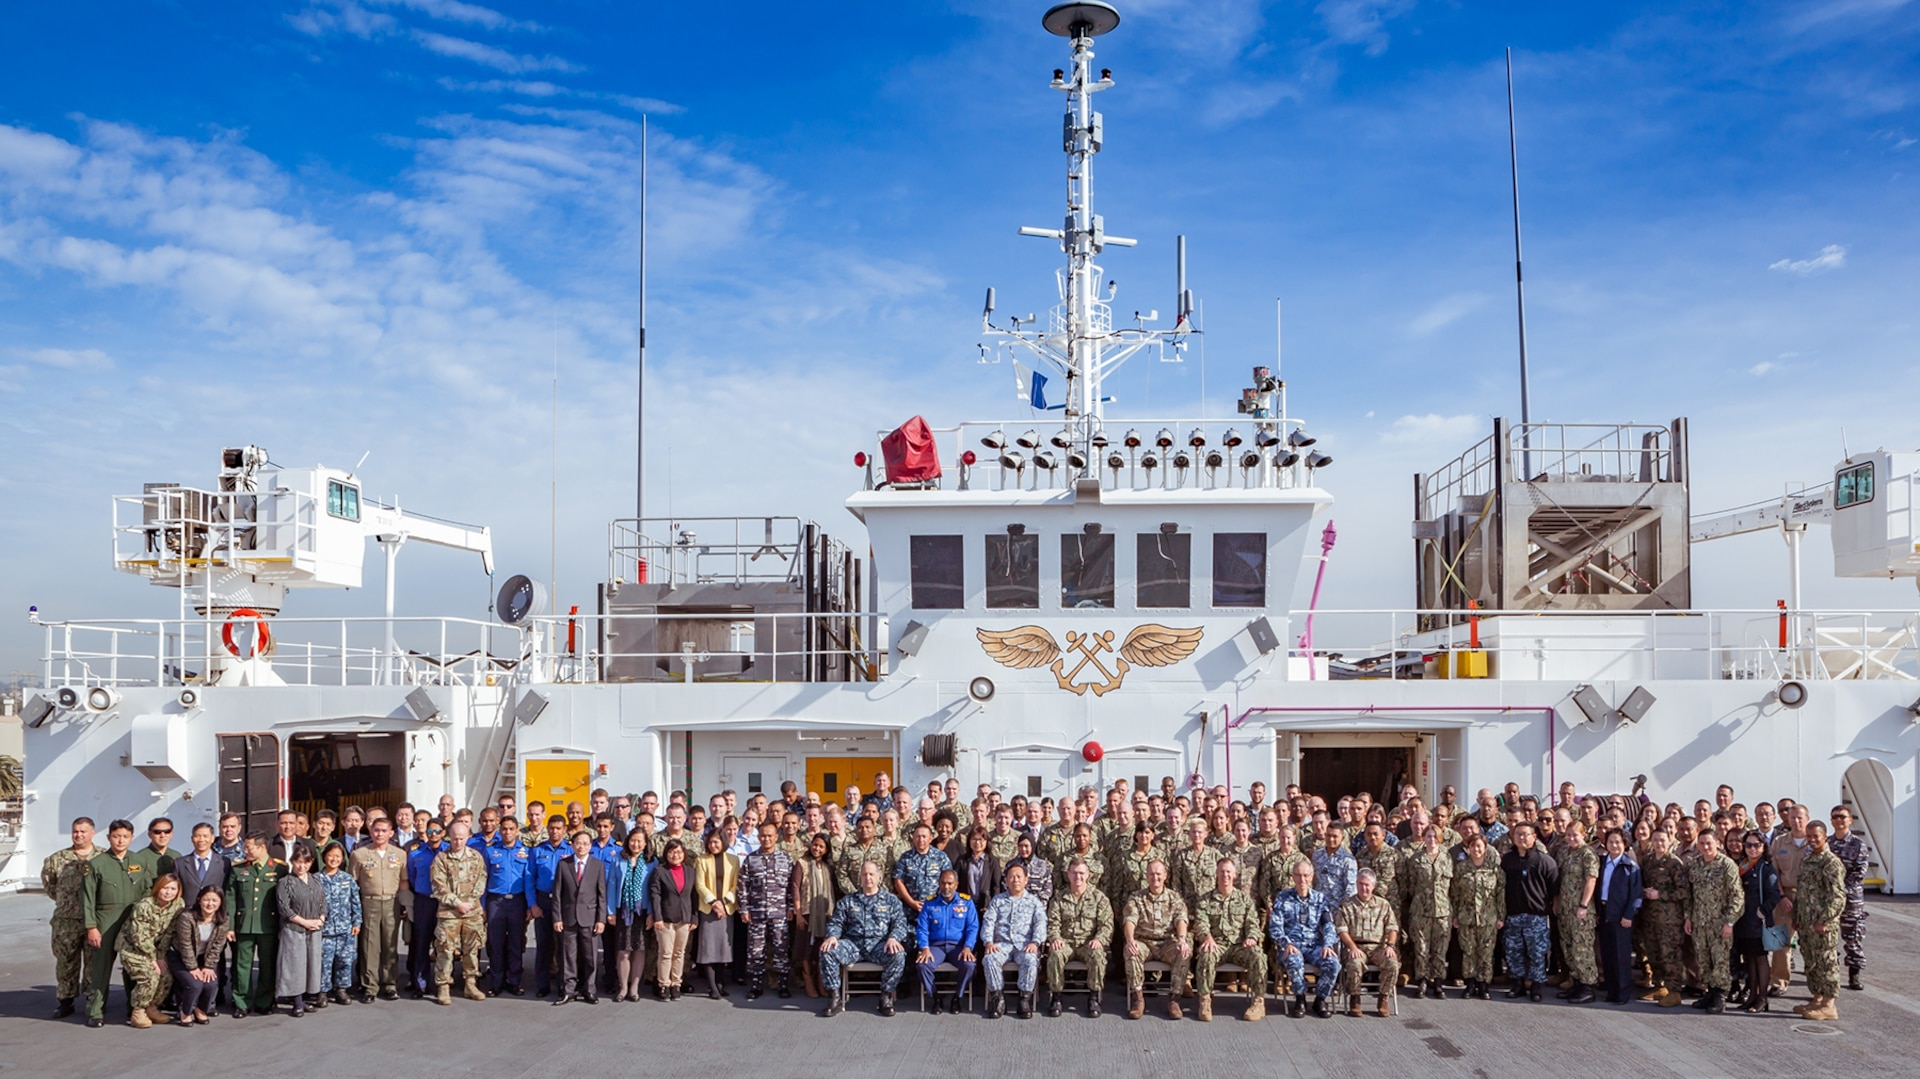 Pacific Partnership Mission Prepares to Enhance Disaster Response Cooperation, Strengthen Ties in Indo-Asia-Pacific